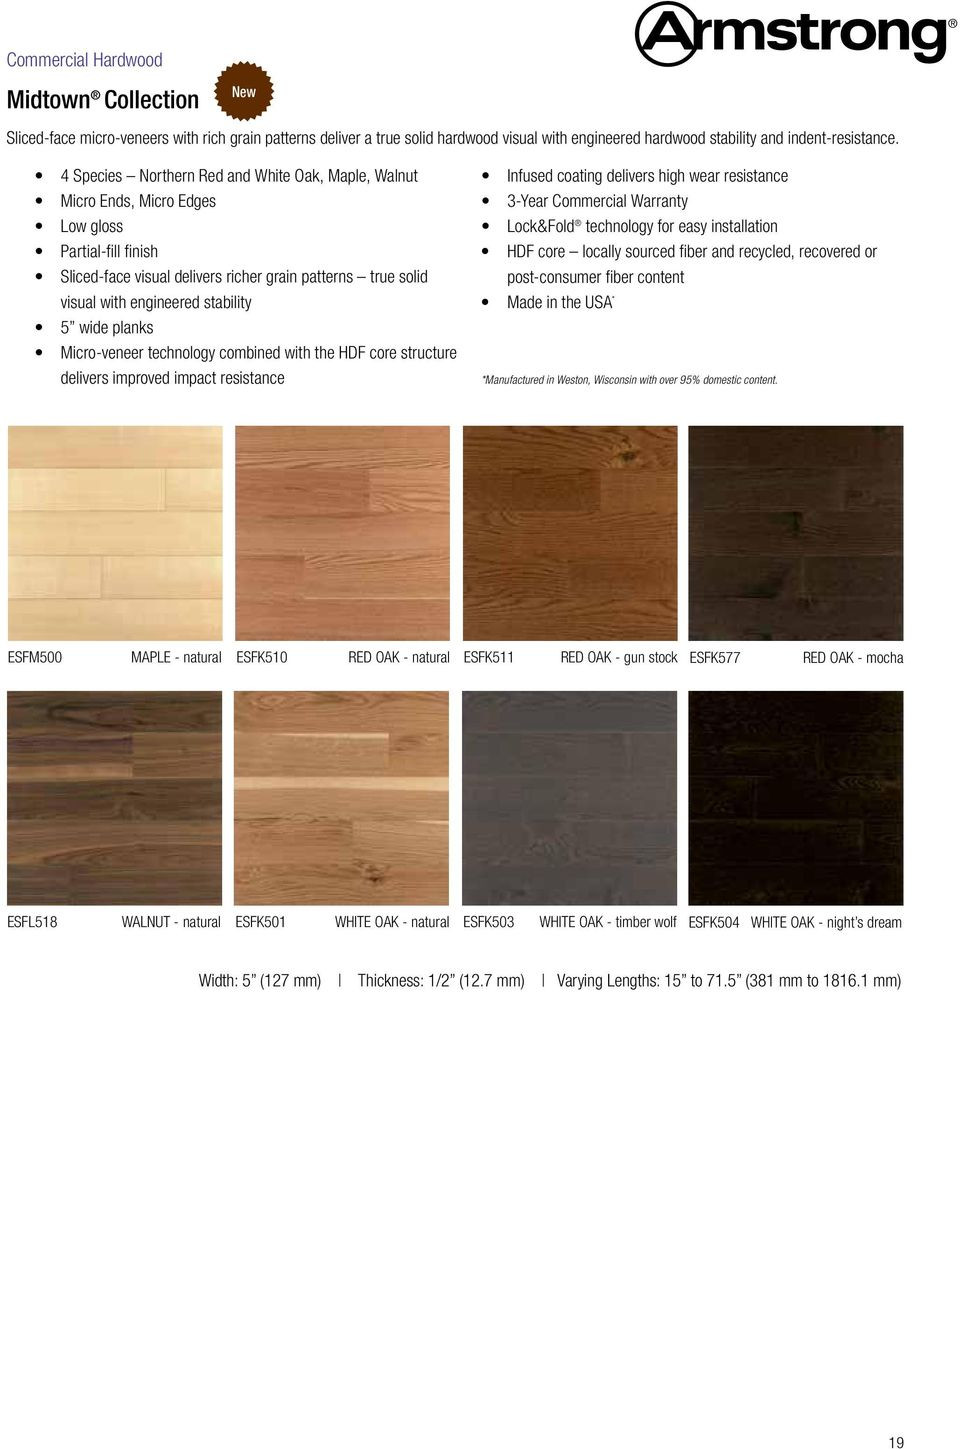 mohawk floorcare essentials hardwood laminate floor cleaner of performance plus midtown pdf for 5 wide planks micro veneer technology combined with the hdf core structure delivers improved impact